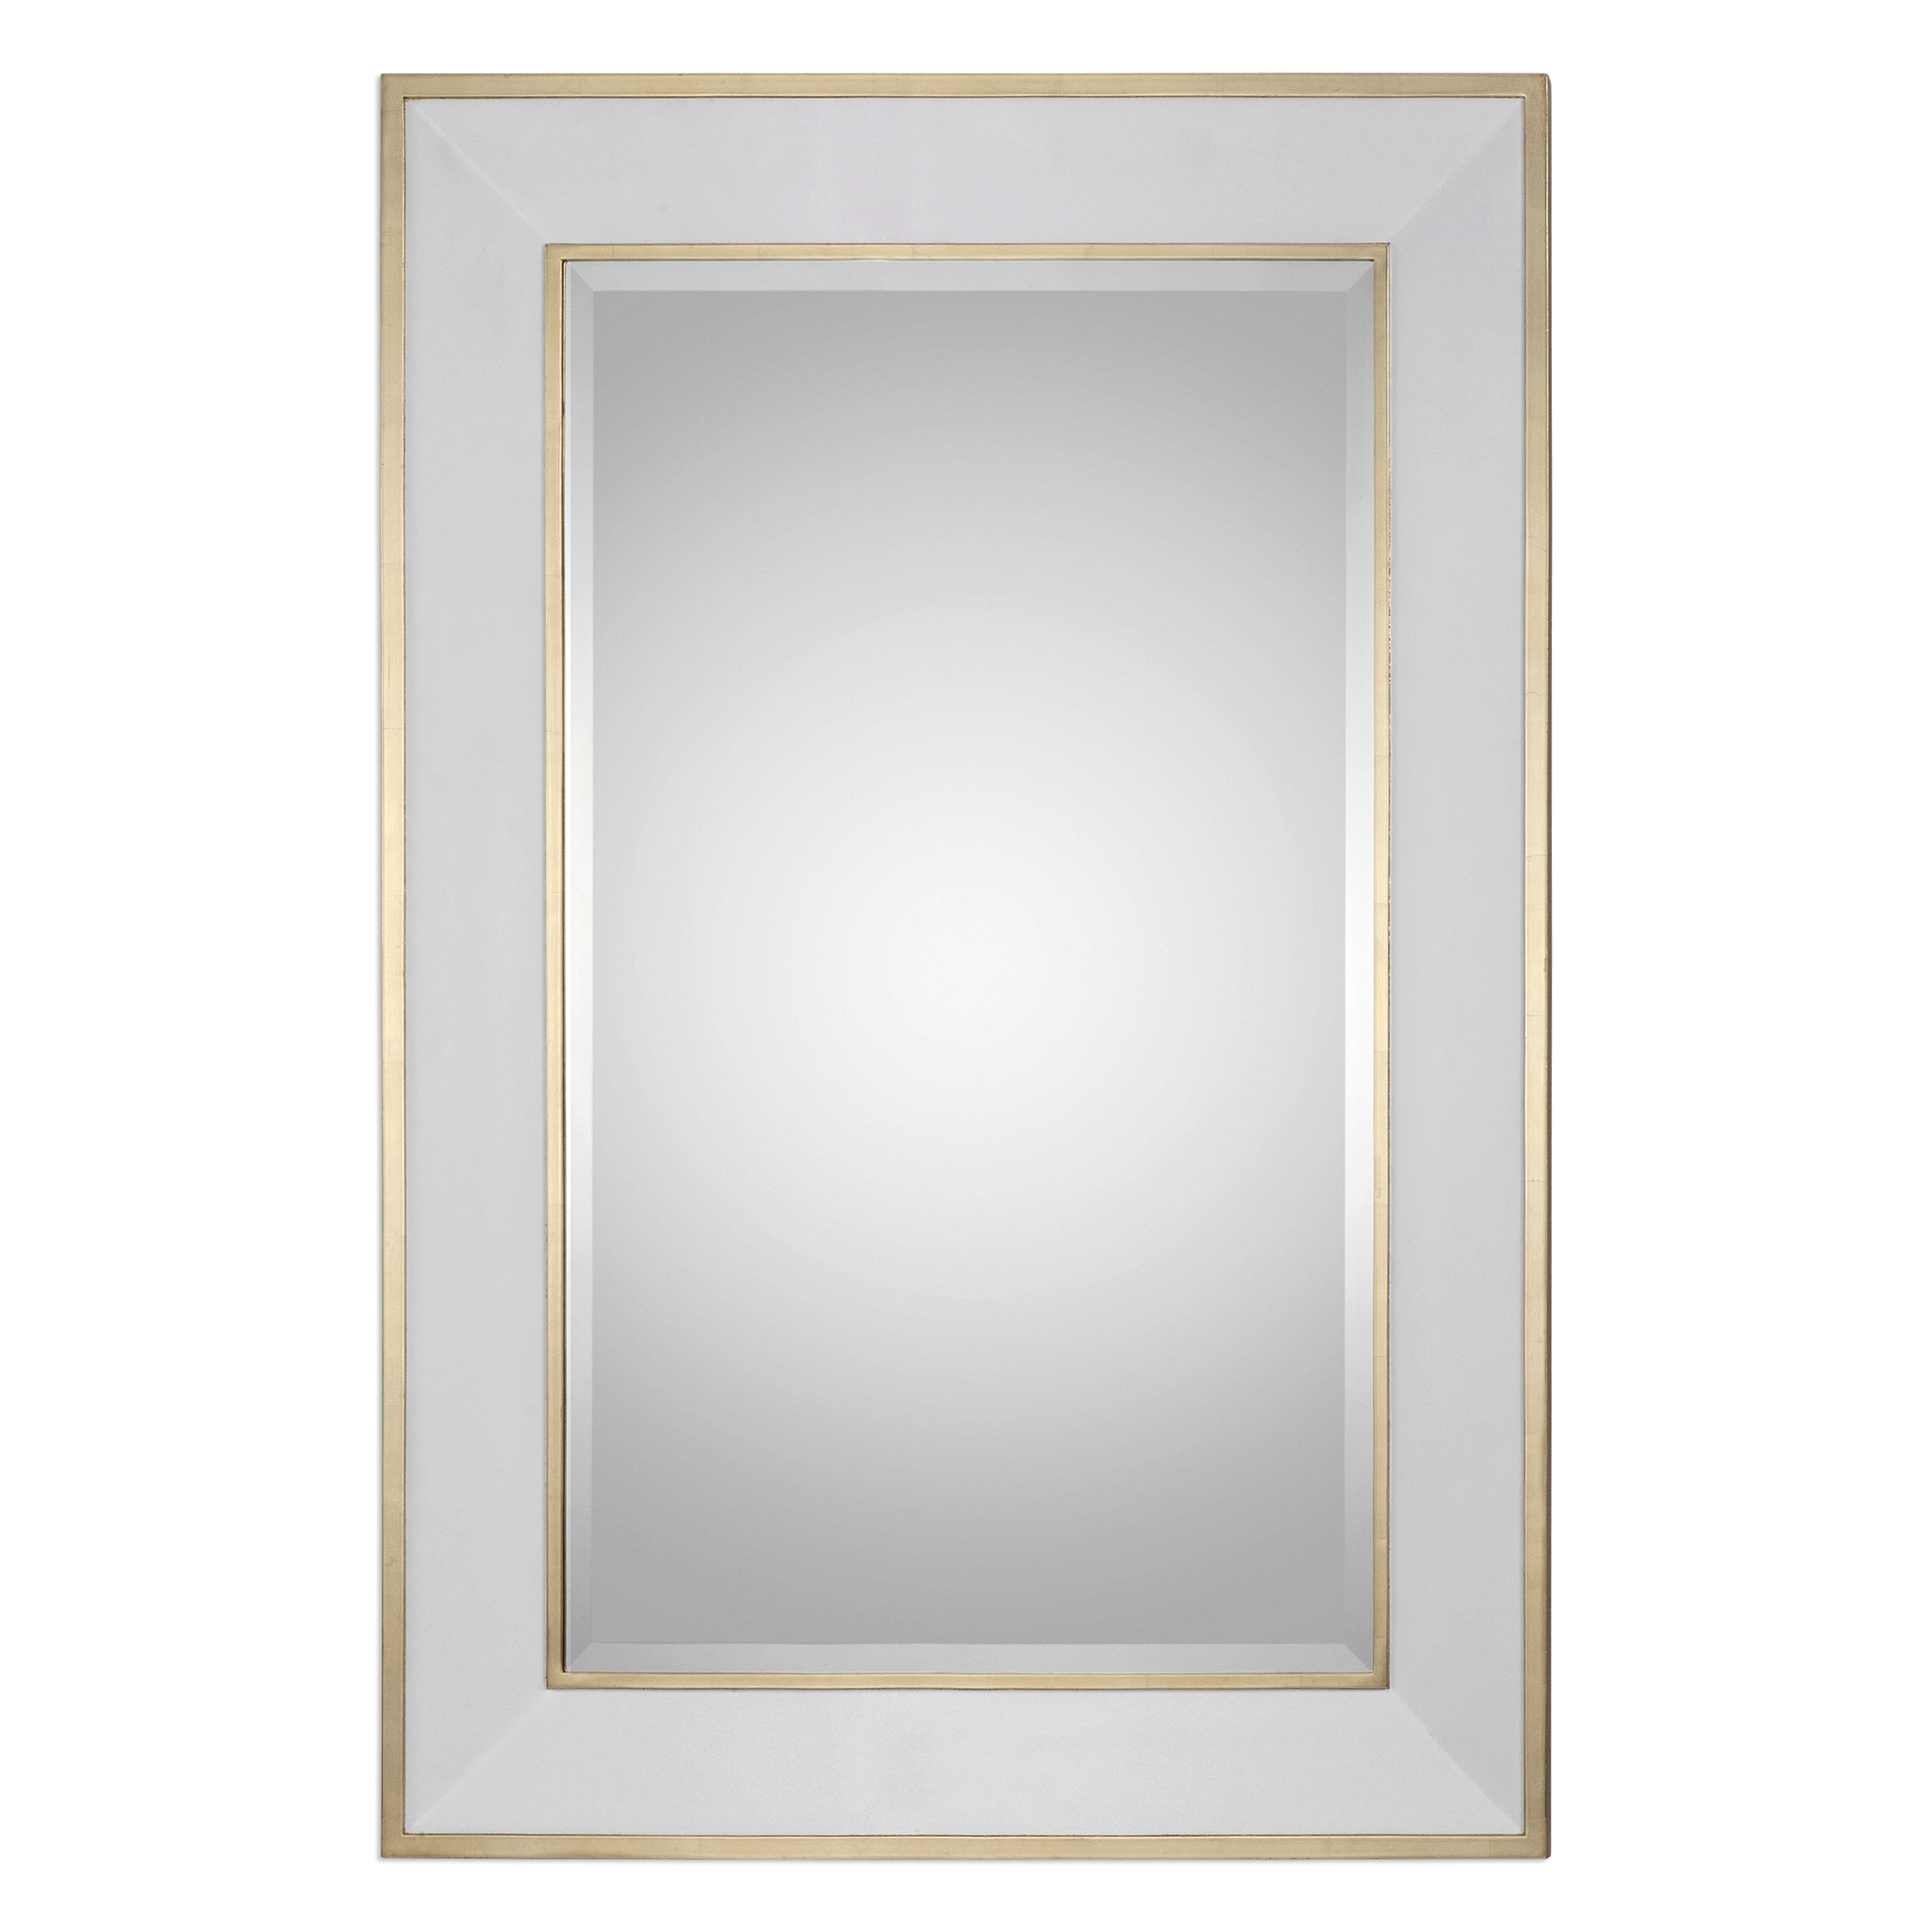 Uttermost Mirrors Cormor White Mirror - Item Number: 09082